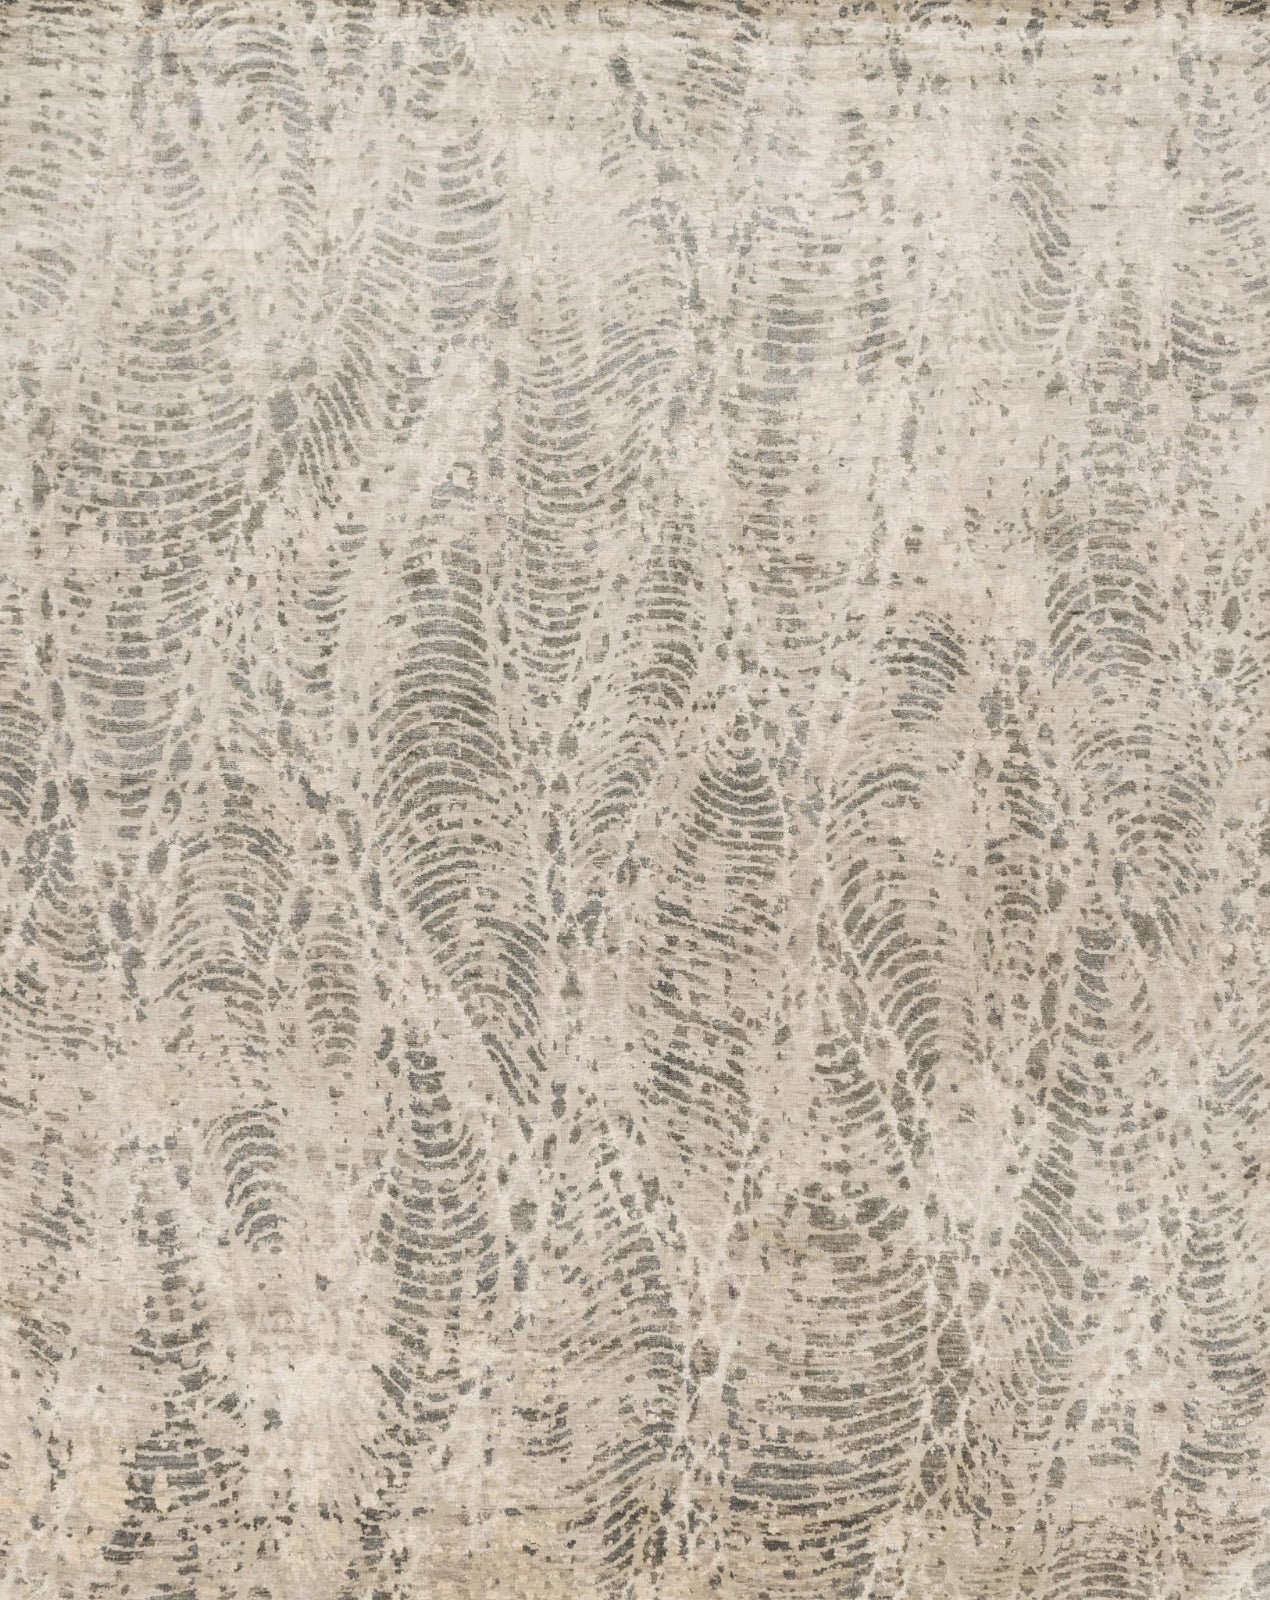 Loloi Transcend Td 04 Graphite Blue Area Rug Incredible Rugs And Decor